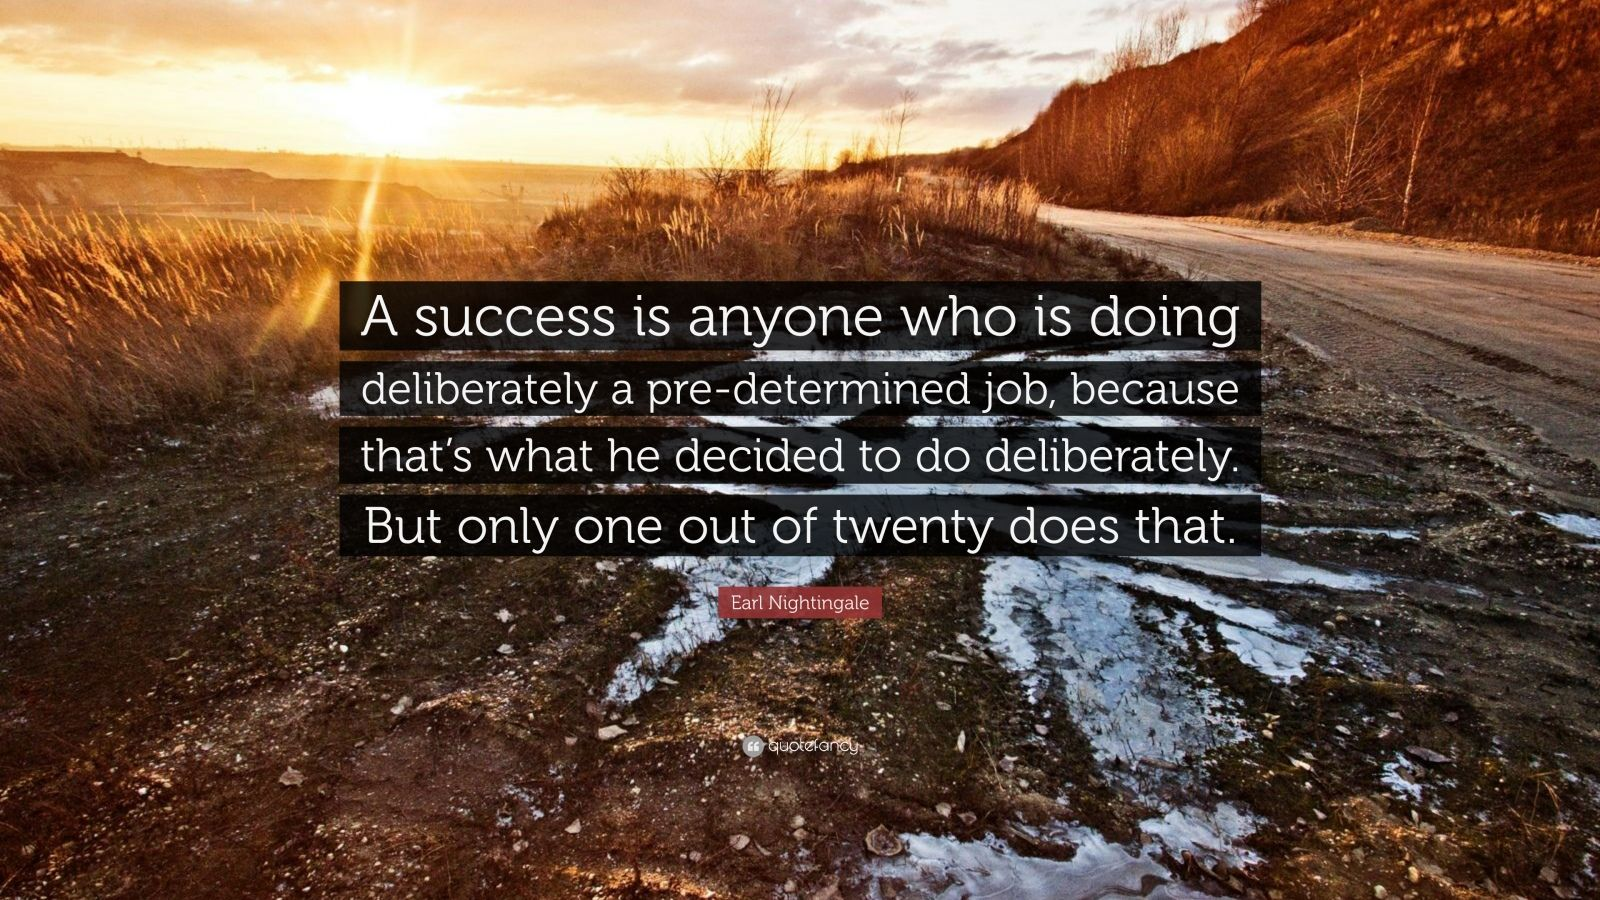 """Earl Nightingale Quote: """"A success is anyone who is doing deliberately a pre-determined job, because that's what he decided to do deliberately. But only one out of twenty does that."""""""